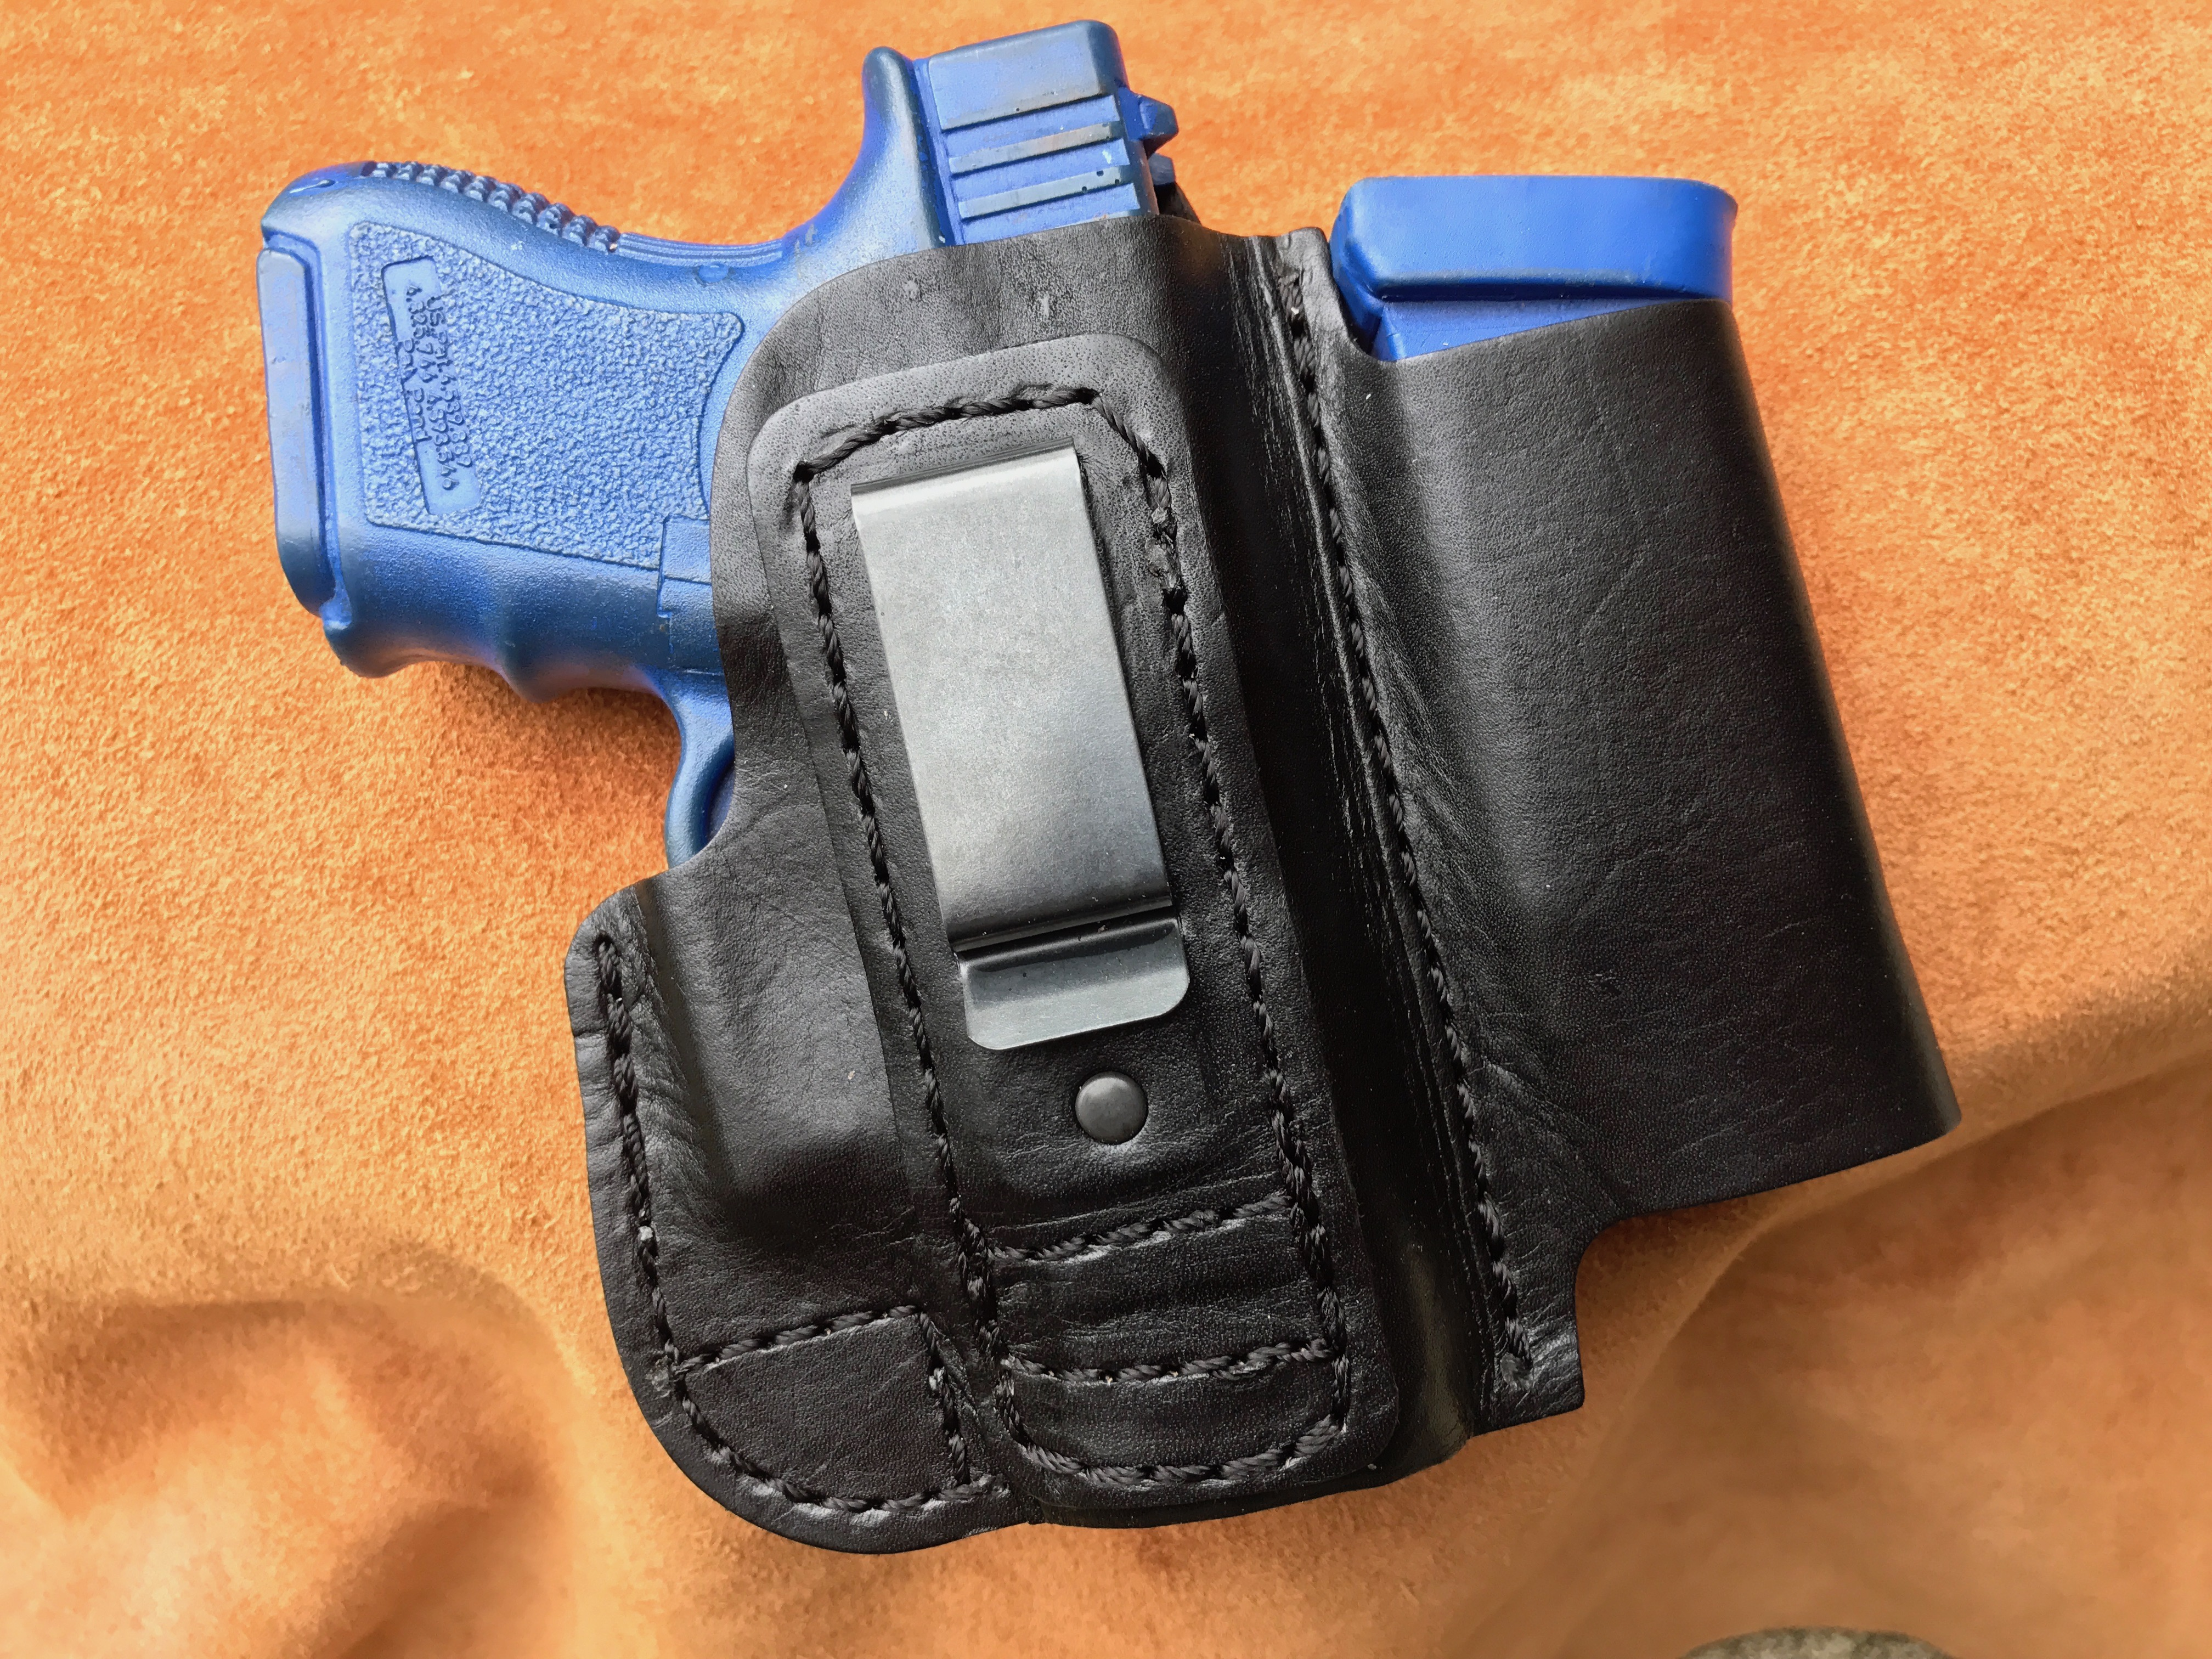 Conceal Carry Tuck-able (IWB) Holster w/ Magazine Pouch (HOLSTER37)